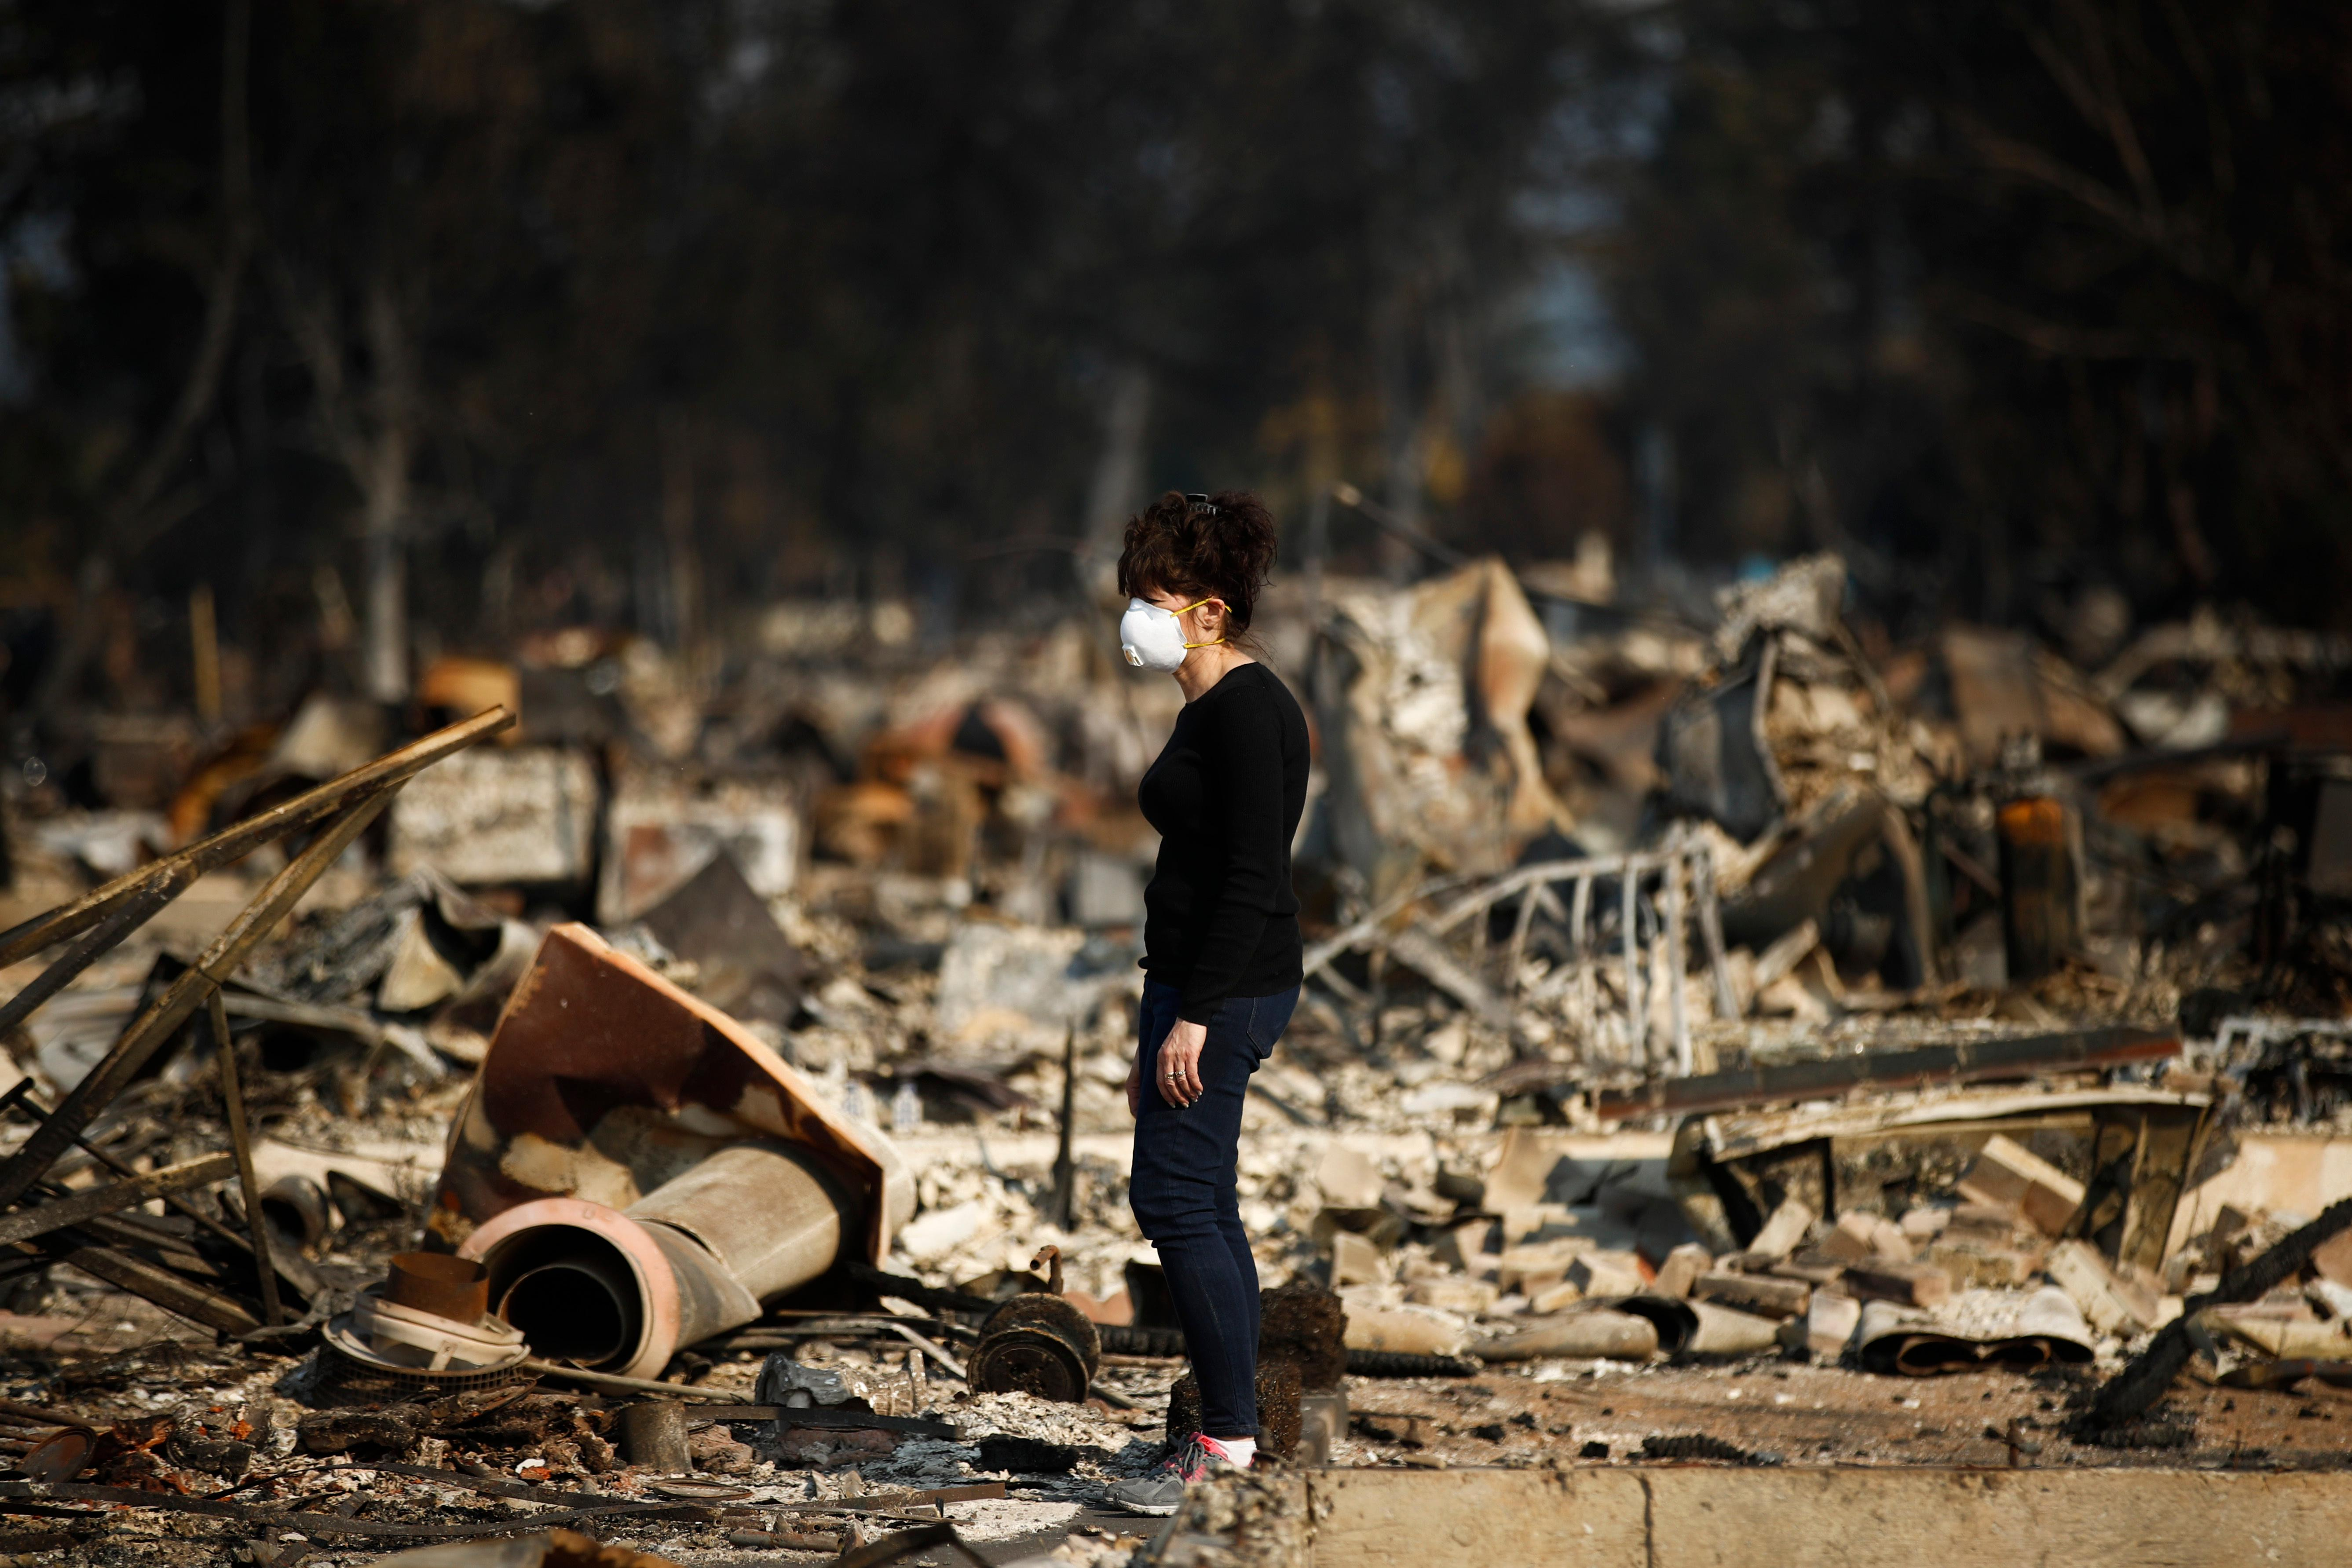 "Karen Curzon stands in what remains of her home, which was destroyed by a wildfire in the Coffey Park neighborhood, Sunday, Oct. 15, 2017, in Santa Rosa, Calif. ""We are going to rebound, rebuild and get this community back,"" said Curzon. (AP Photo/Jae C. Hong)"